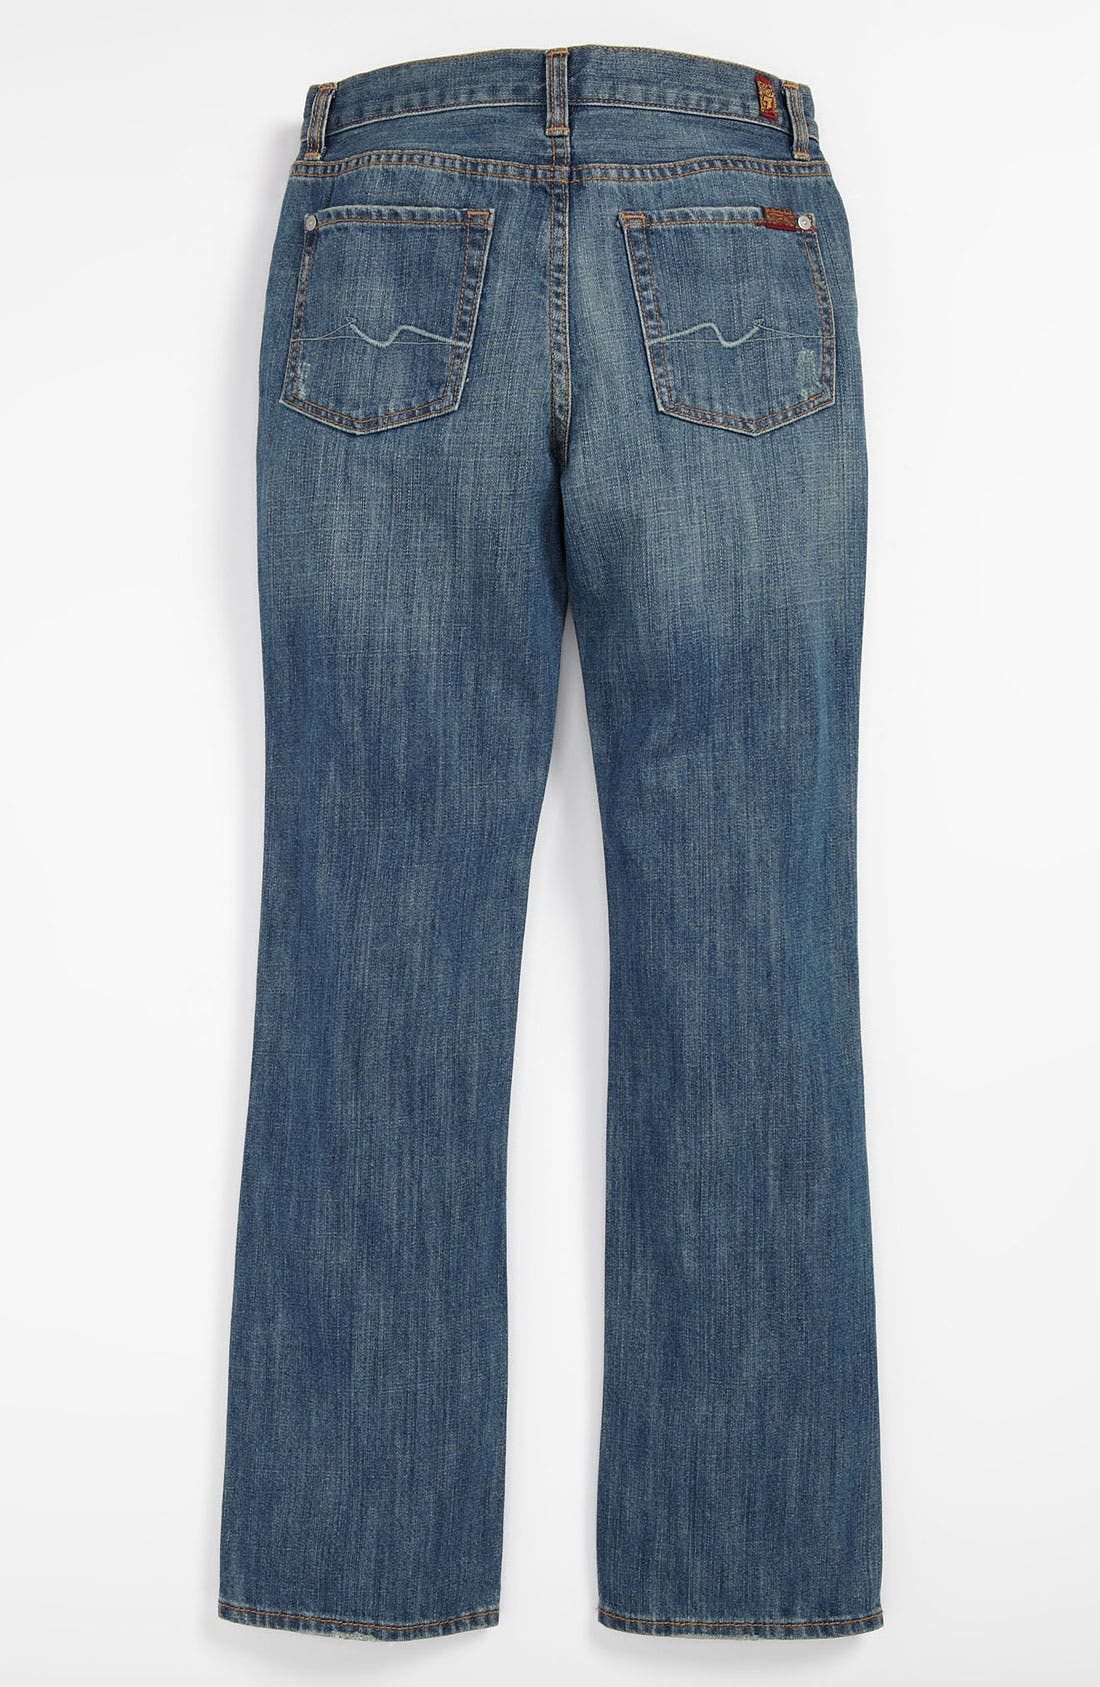 Alternate Image 1 Selected - 7 For All Mankind® 'Nate' Slim Bootcut Jeans (Little Boys)